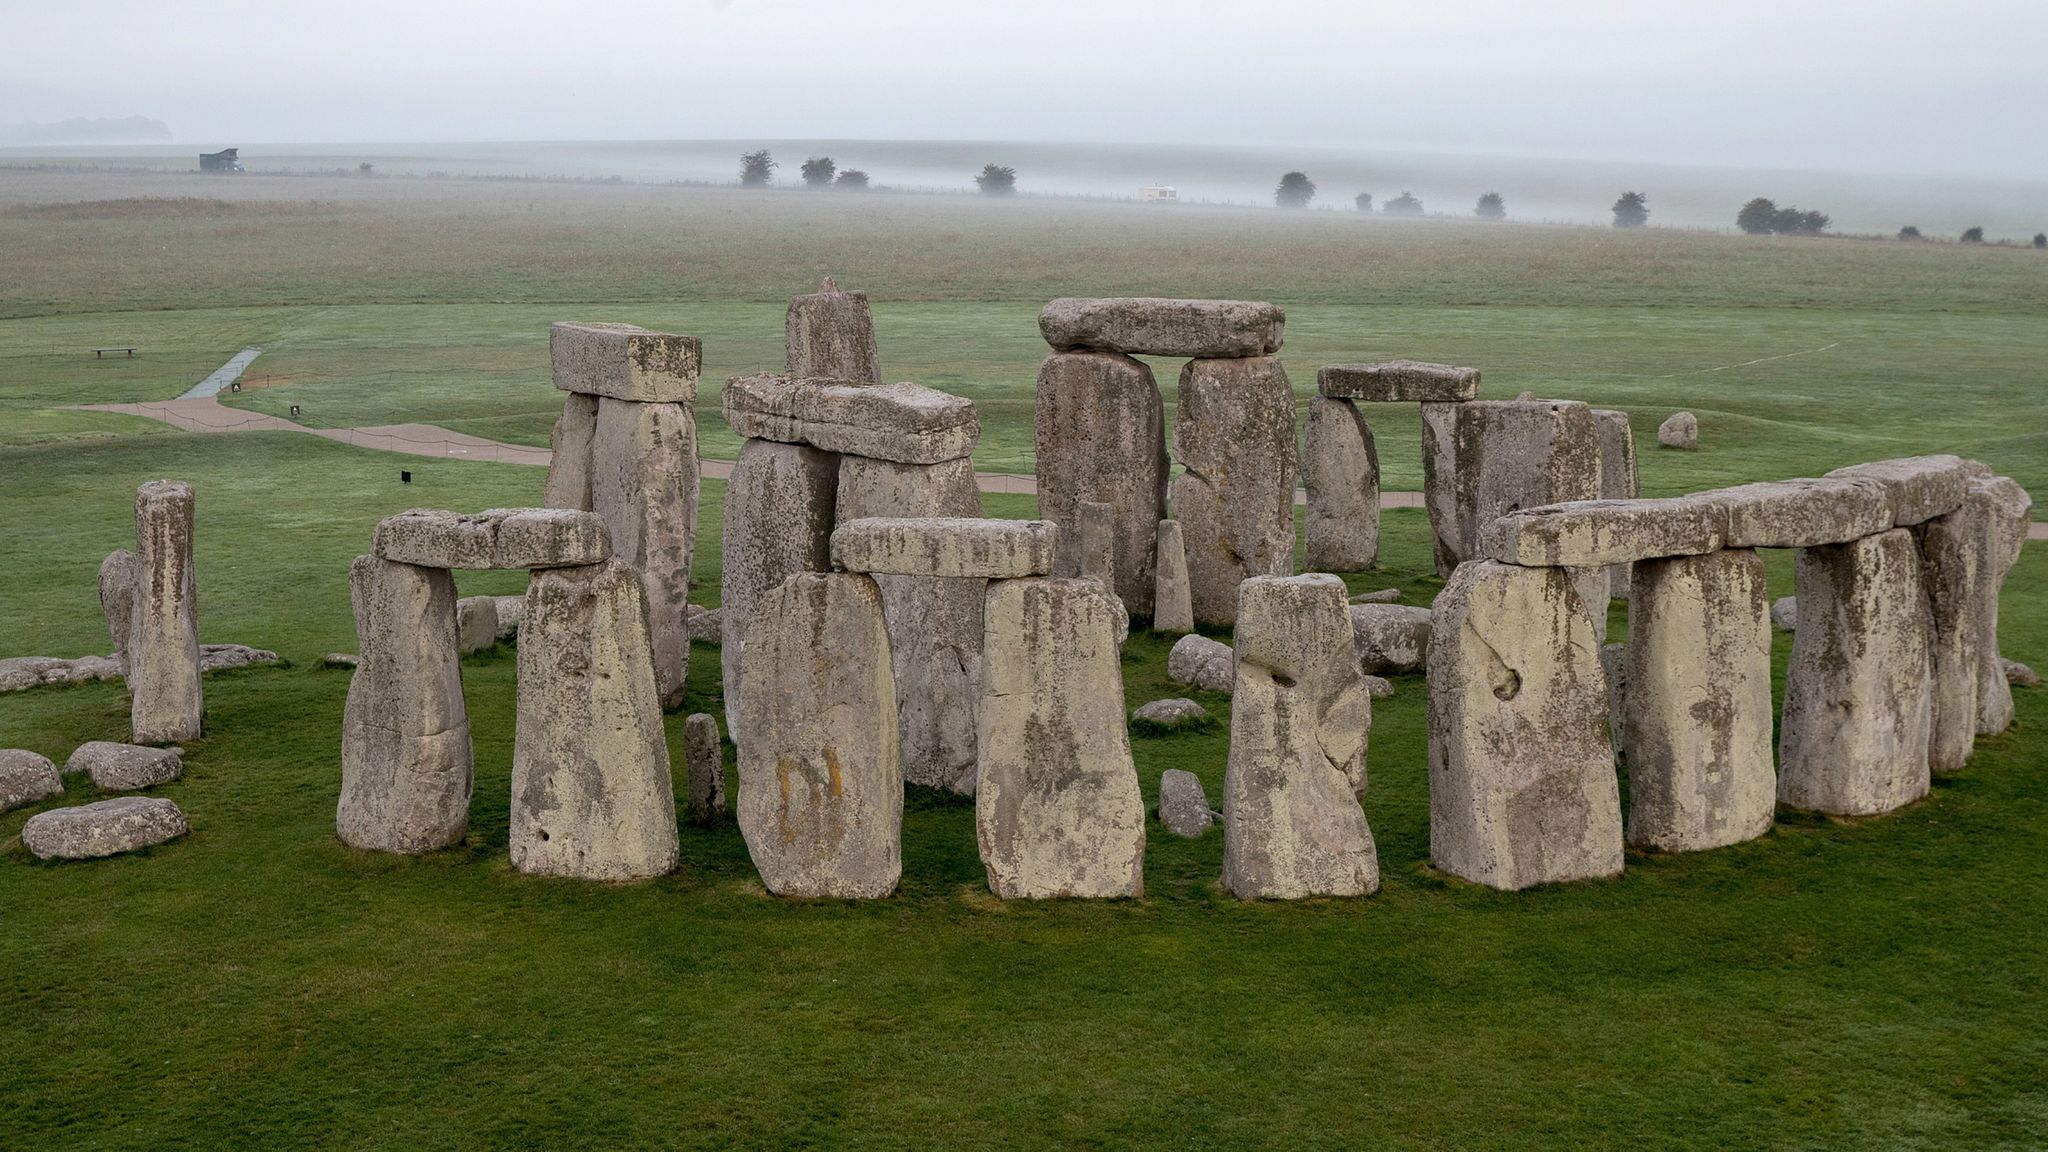 Crazy Facts About Stonehenge – The Mysterious Ancient Site